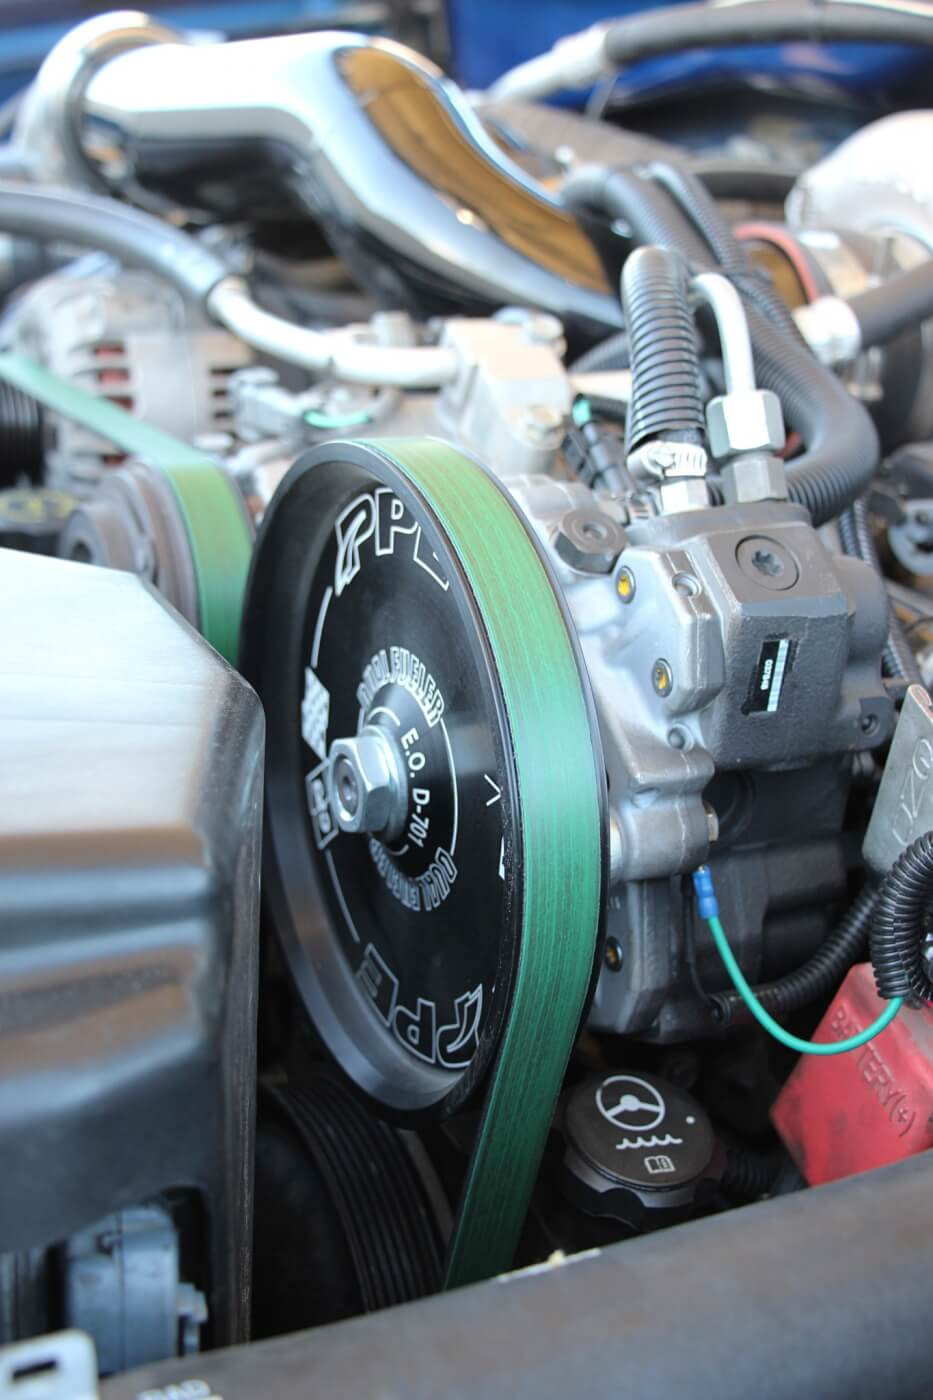 With 100 percent over injectors from Exergy Performance to feed, a PPE Dual Fueler CP3 kit was installed. Matt sourced both brand new pumps from his local GM dealer. An LB7 CP3 sits in the factory location, with an LBZ pump getting belt driven up top.